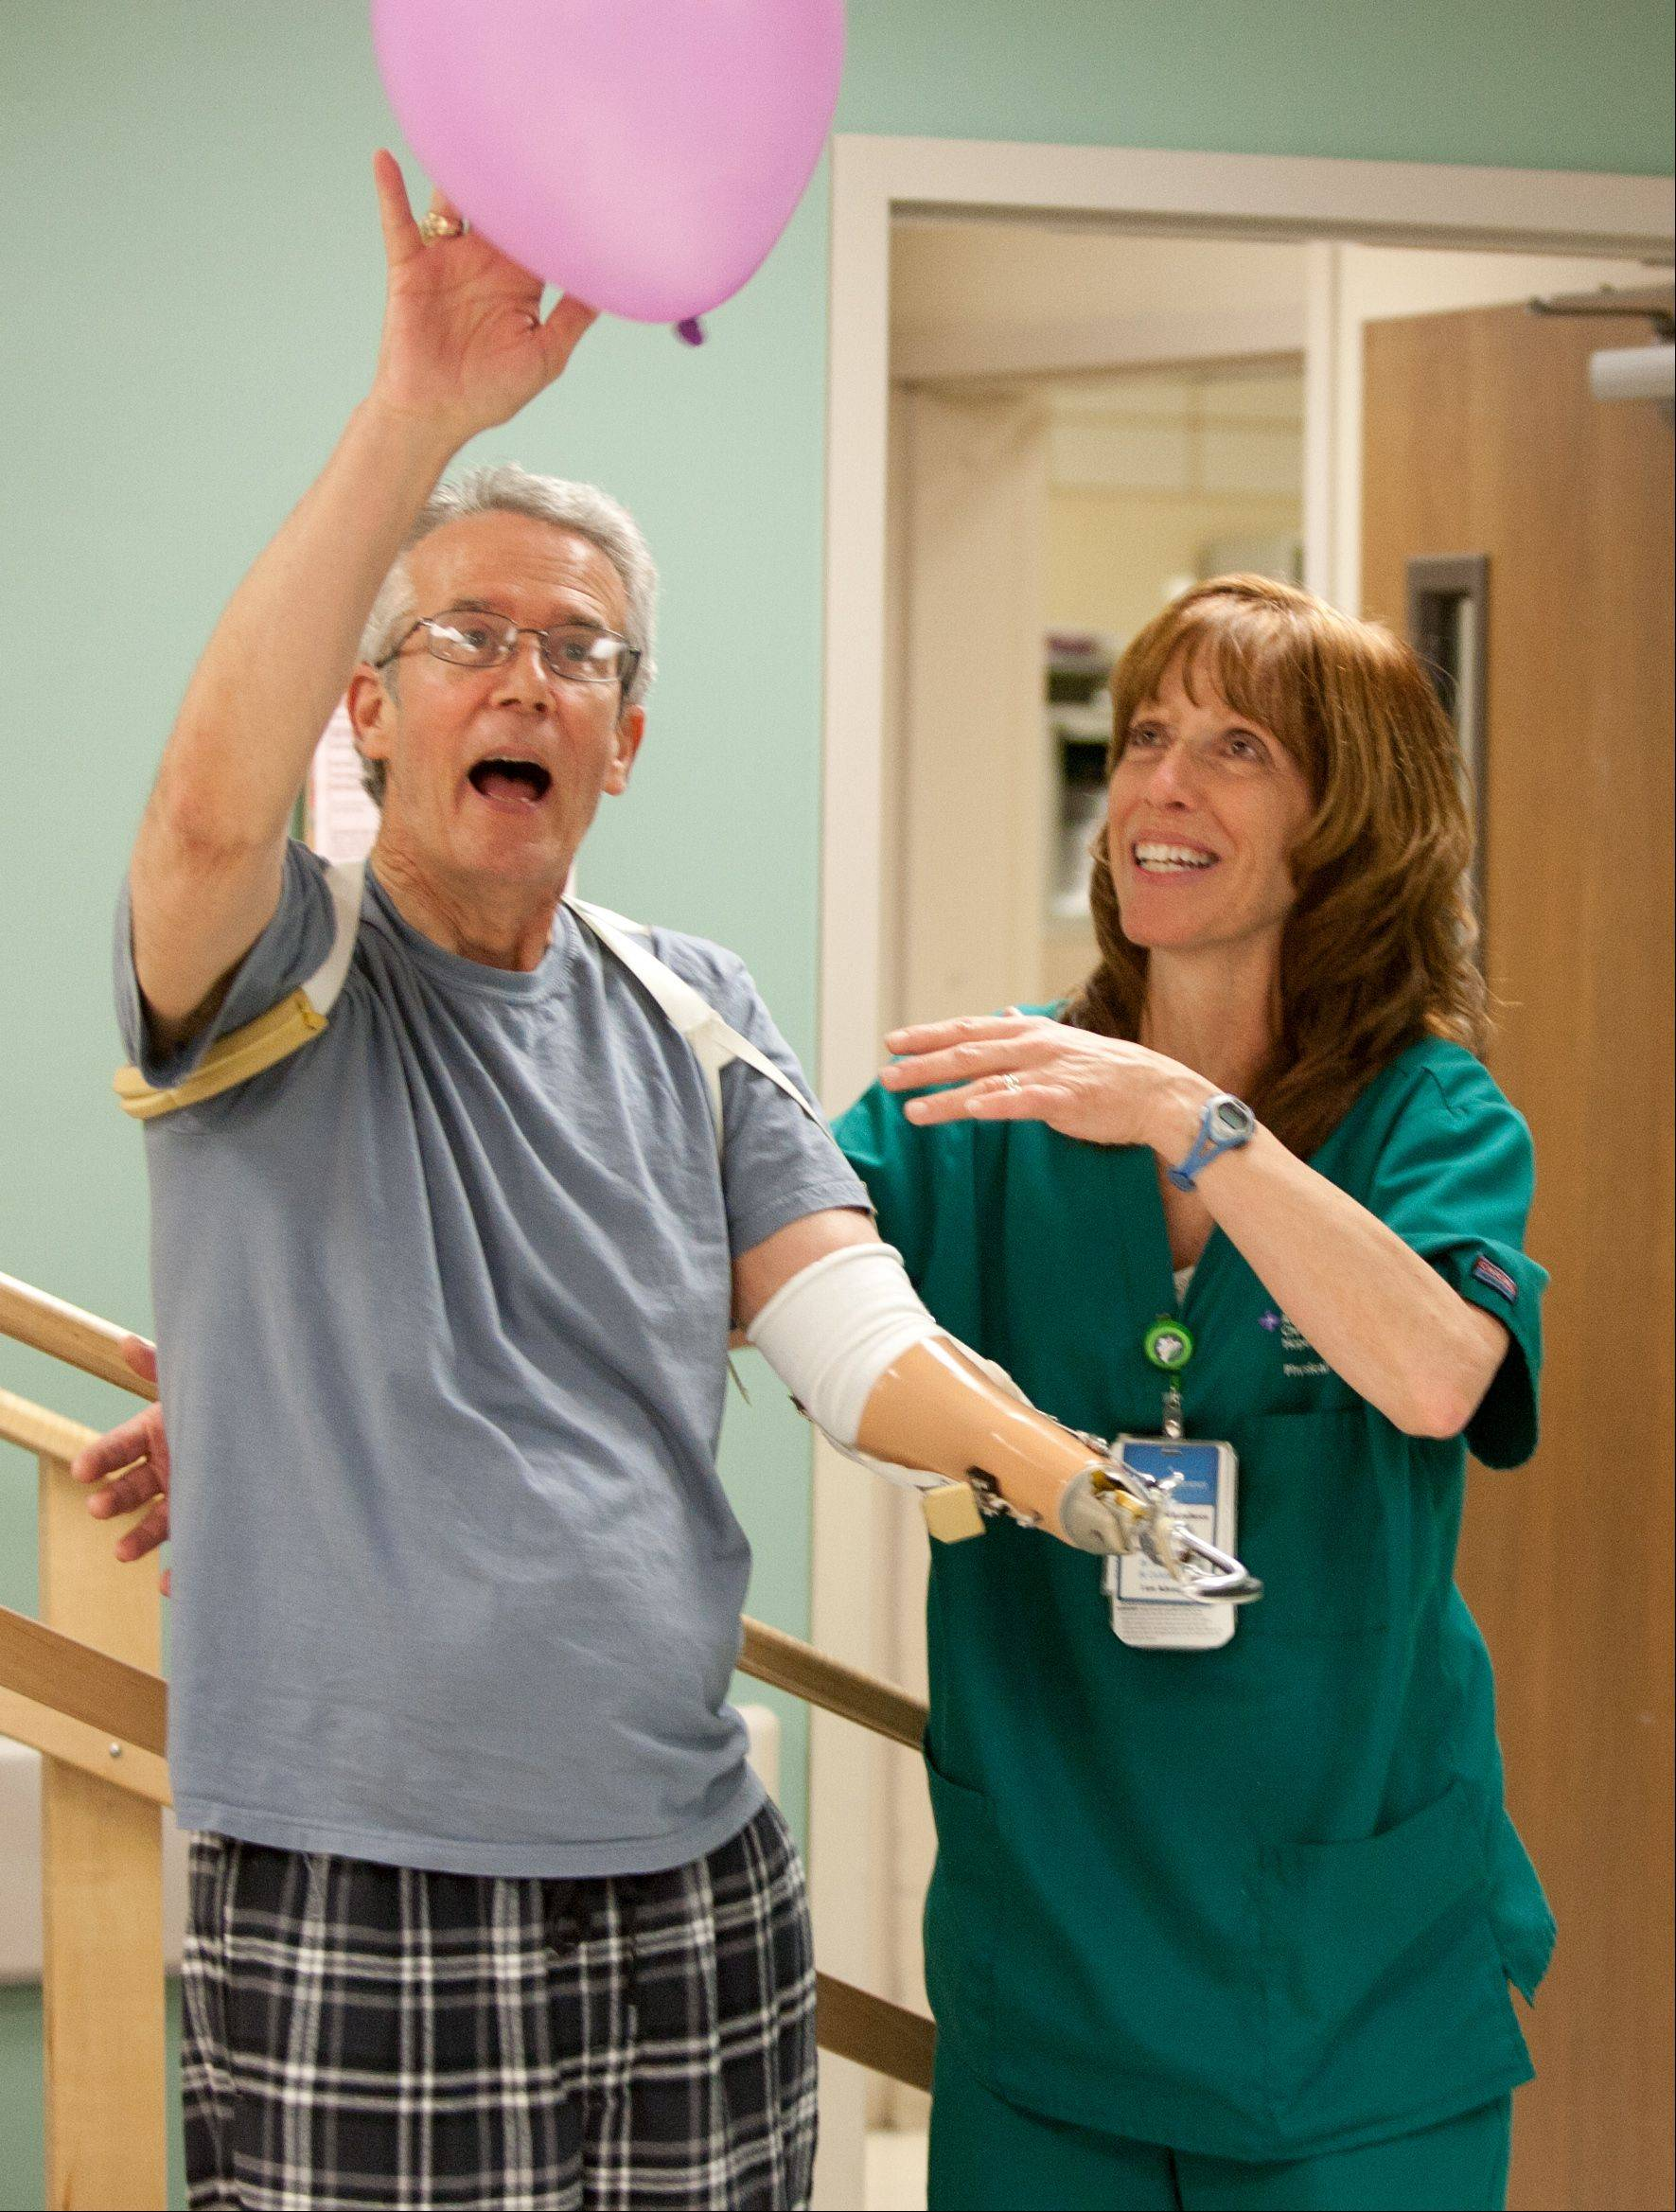 Carson works with a balloon during a physical therapy session with Kathleen Dub.